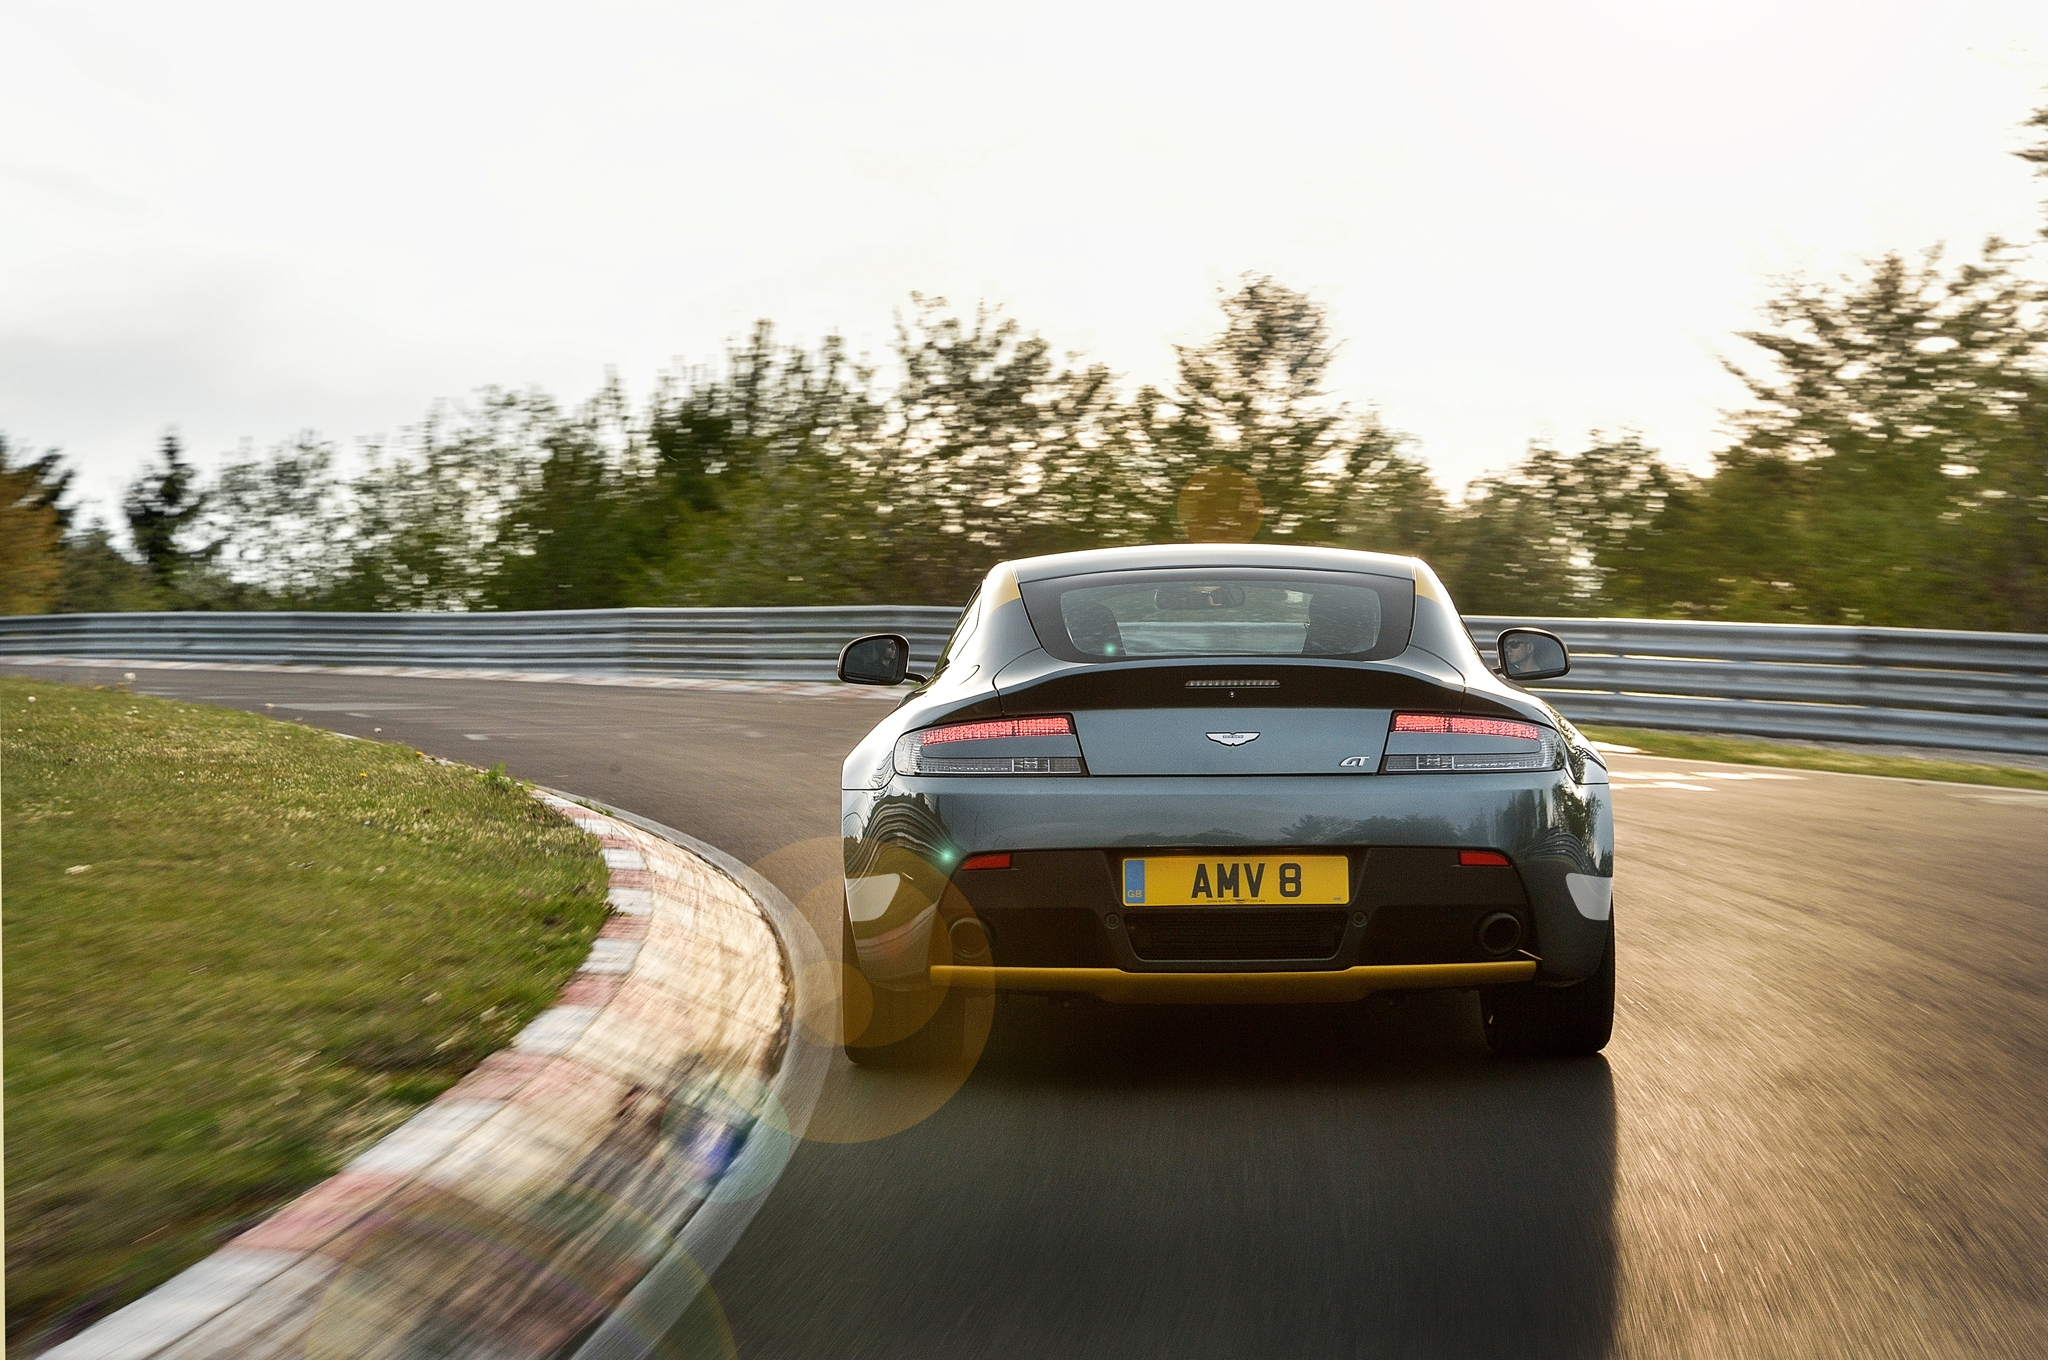 2015 Aston Martin V8 Vantage Gt Circuit Test (View 4 of 7)